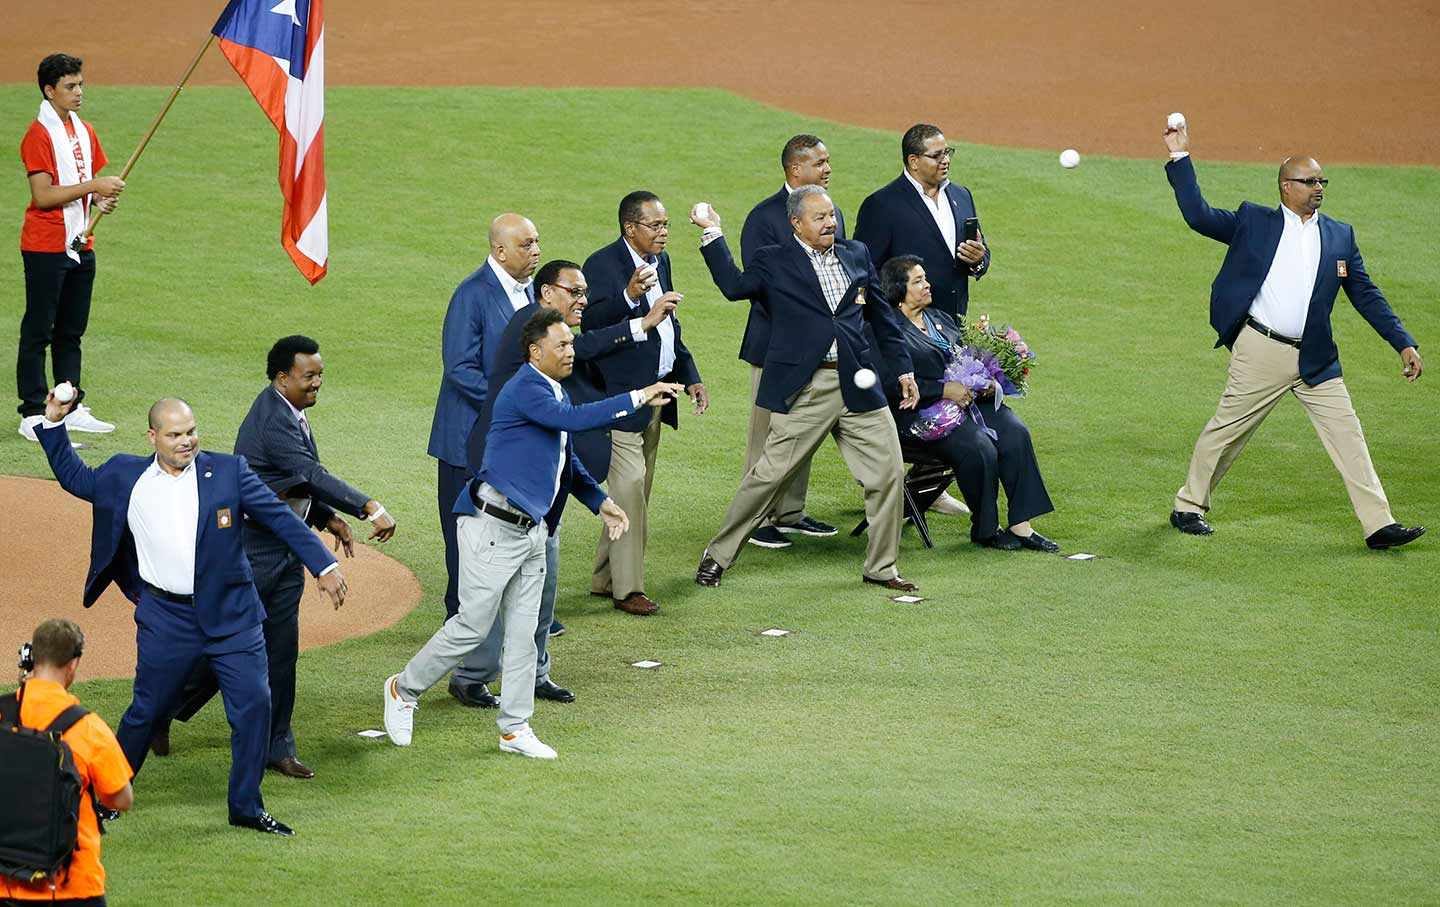 Baseball Hall of Fame players before the MLB baseball All-Star Game in Miami on Tuesday, July 11, 2017.